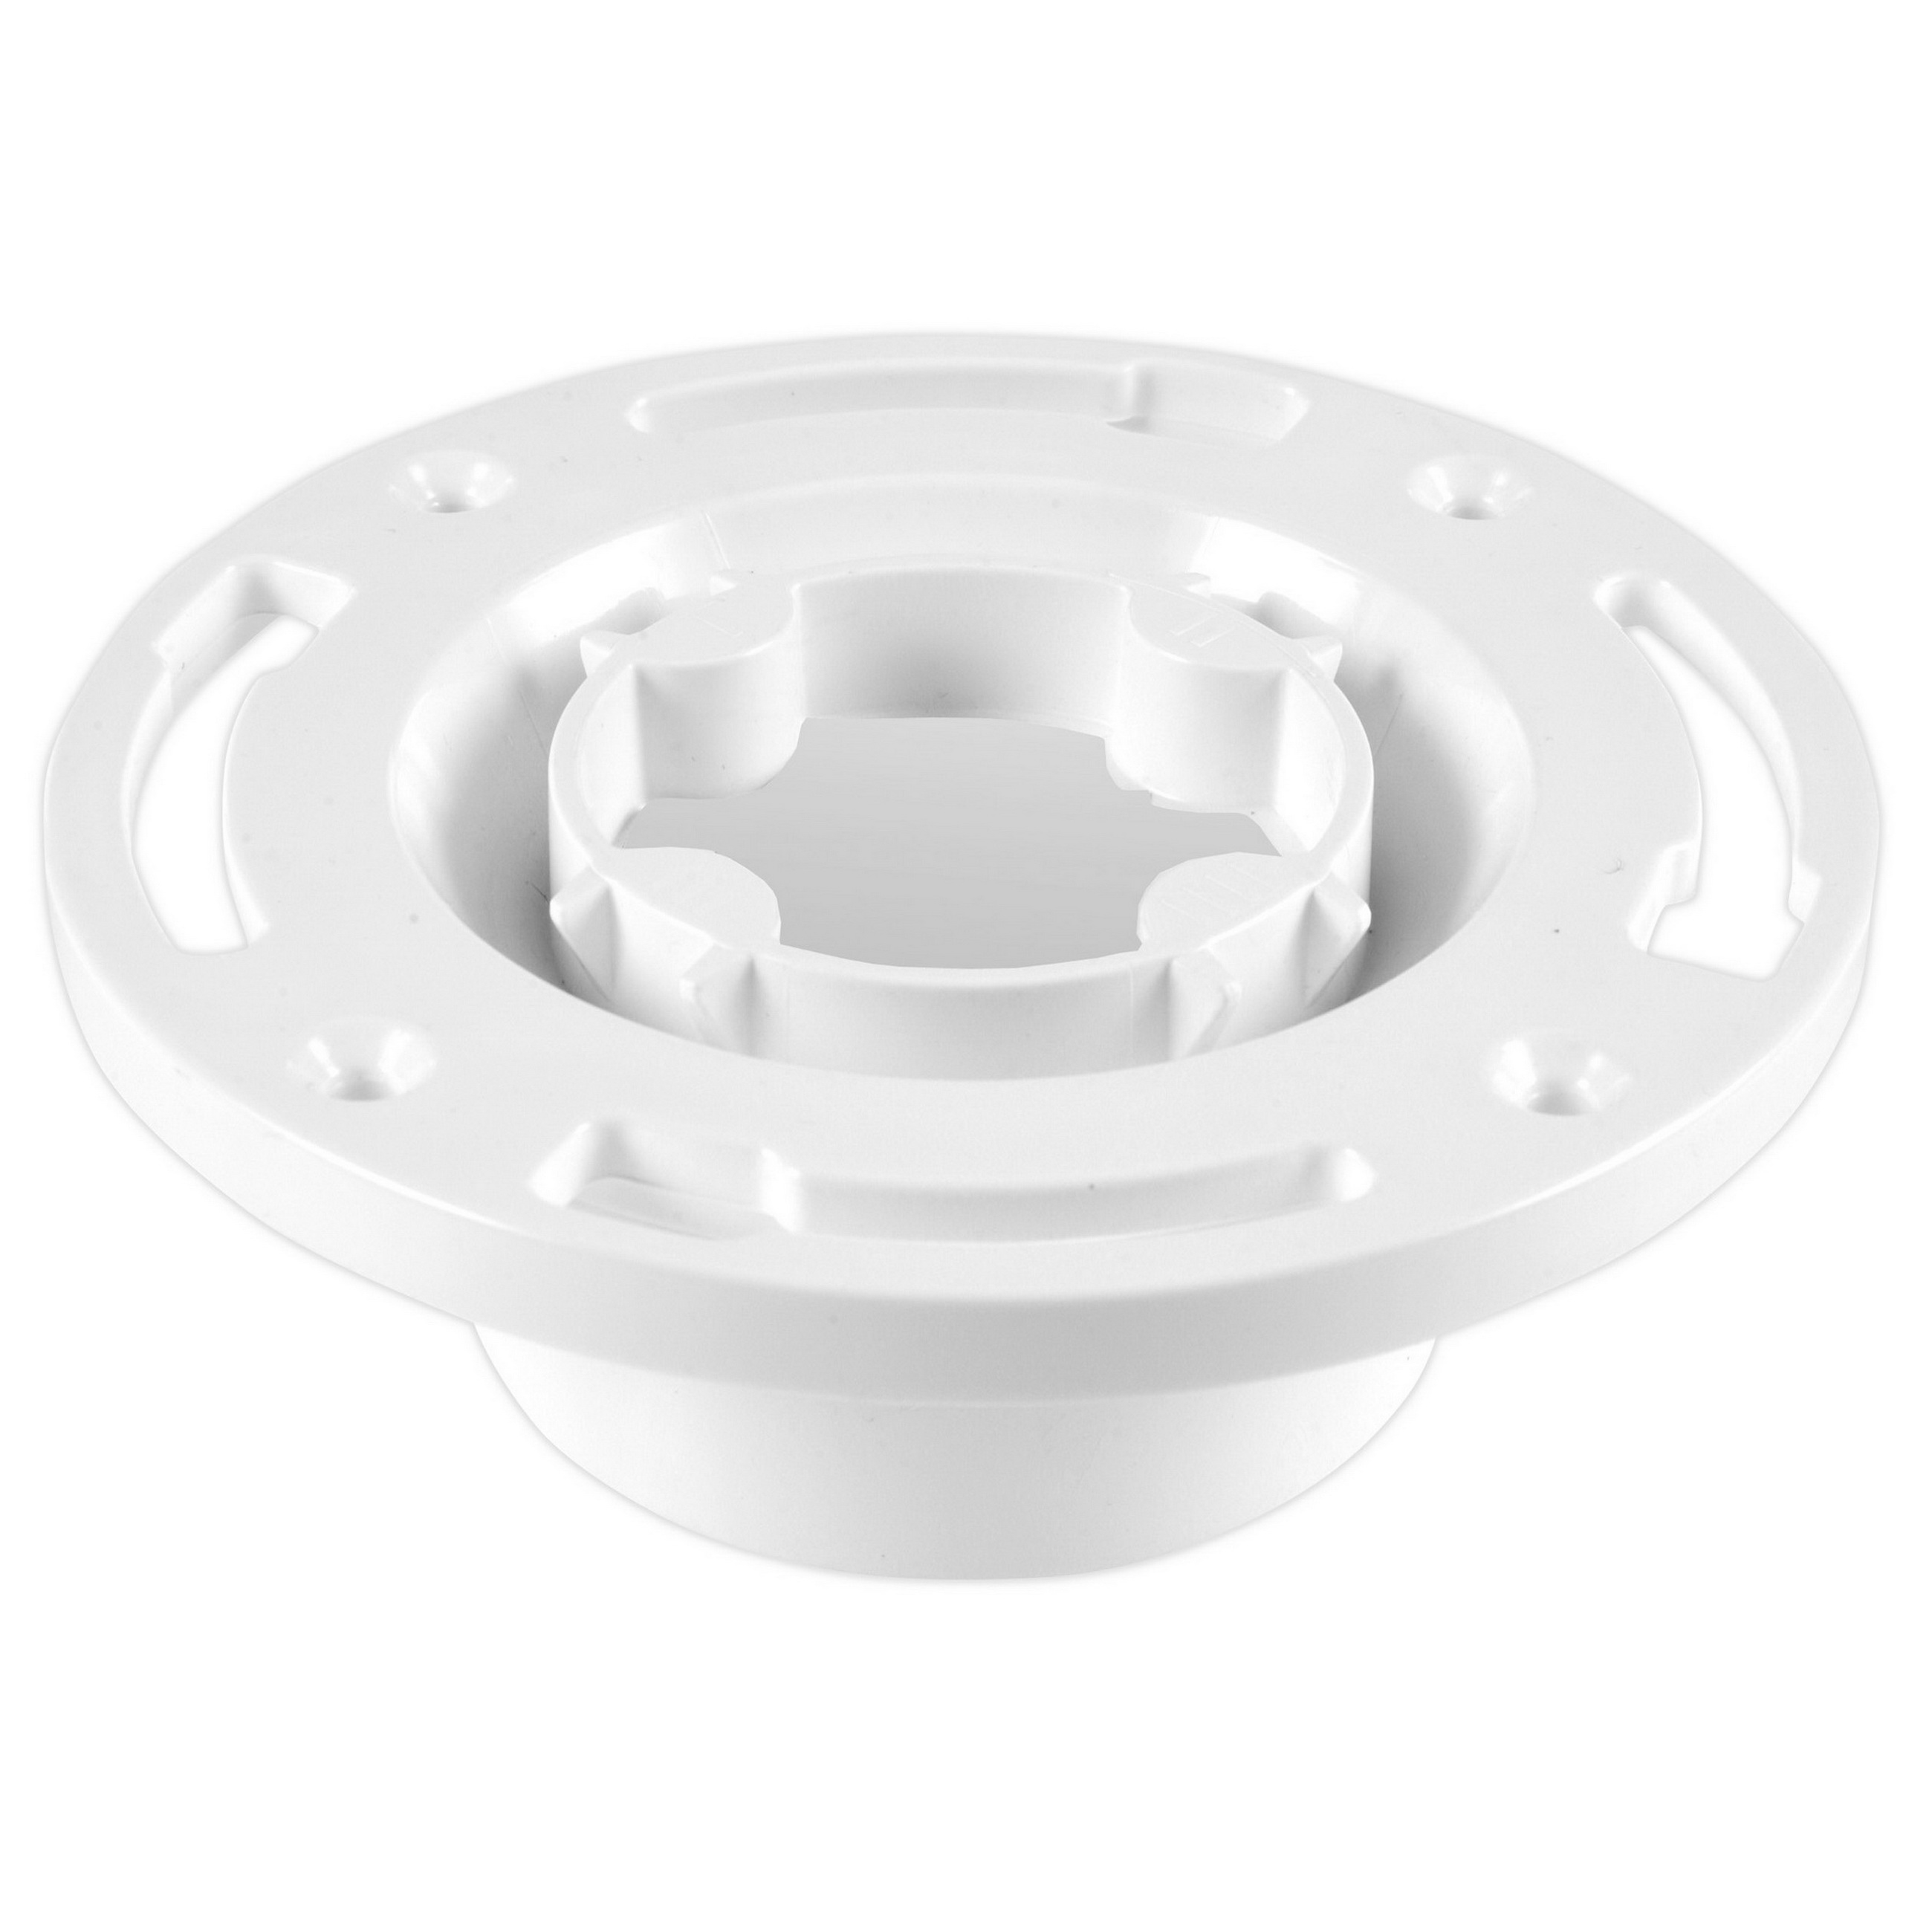 Oatey® Easy Tap™ 43557 White PVC SCH 40 Knock Out Closet Flange with Plastic Ring, 3 - 4 in